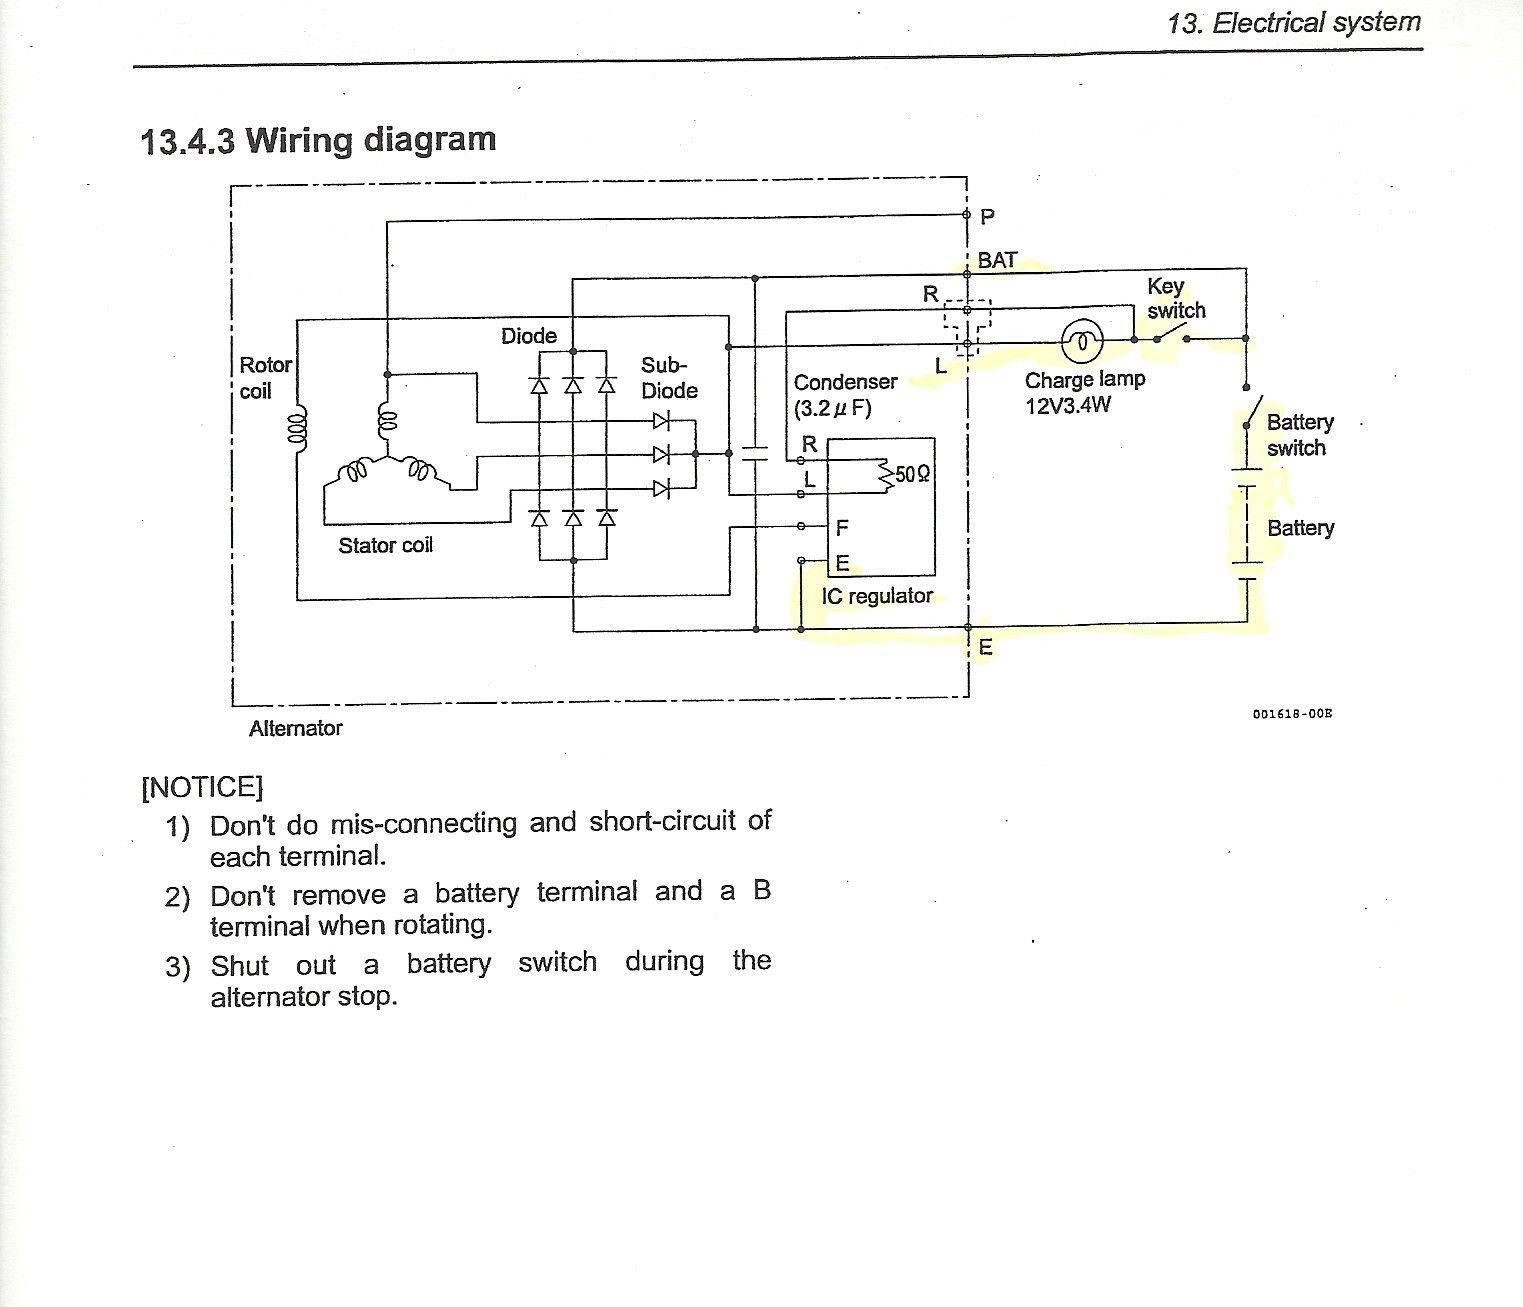 Awesome Isuzu Alternator Wiring Diagram Diagrams Digramssample Diagramimages Wiringdiagramsample Wiringdiagram